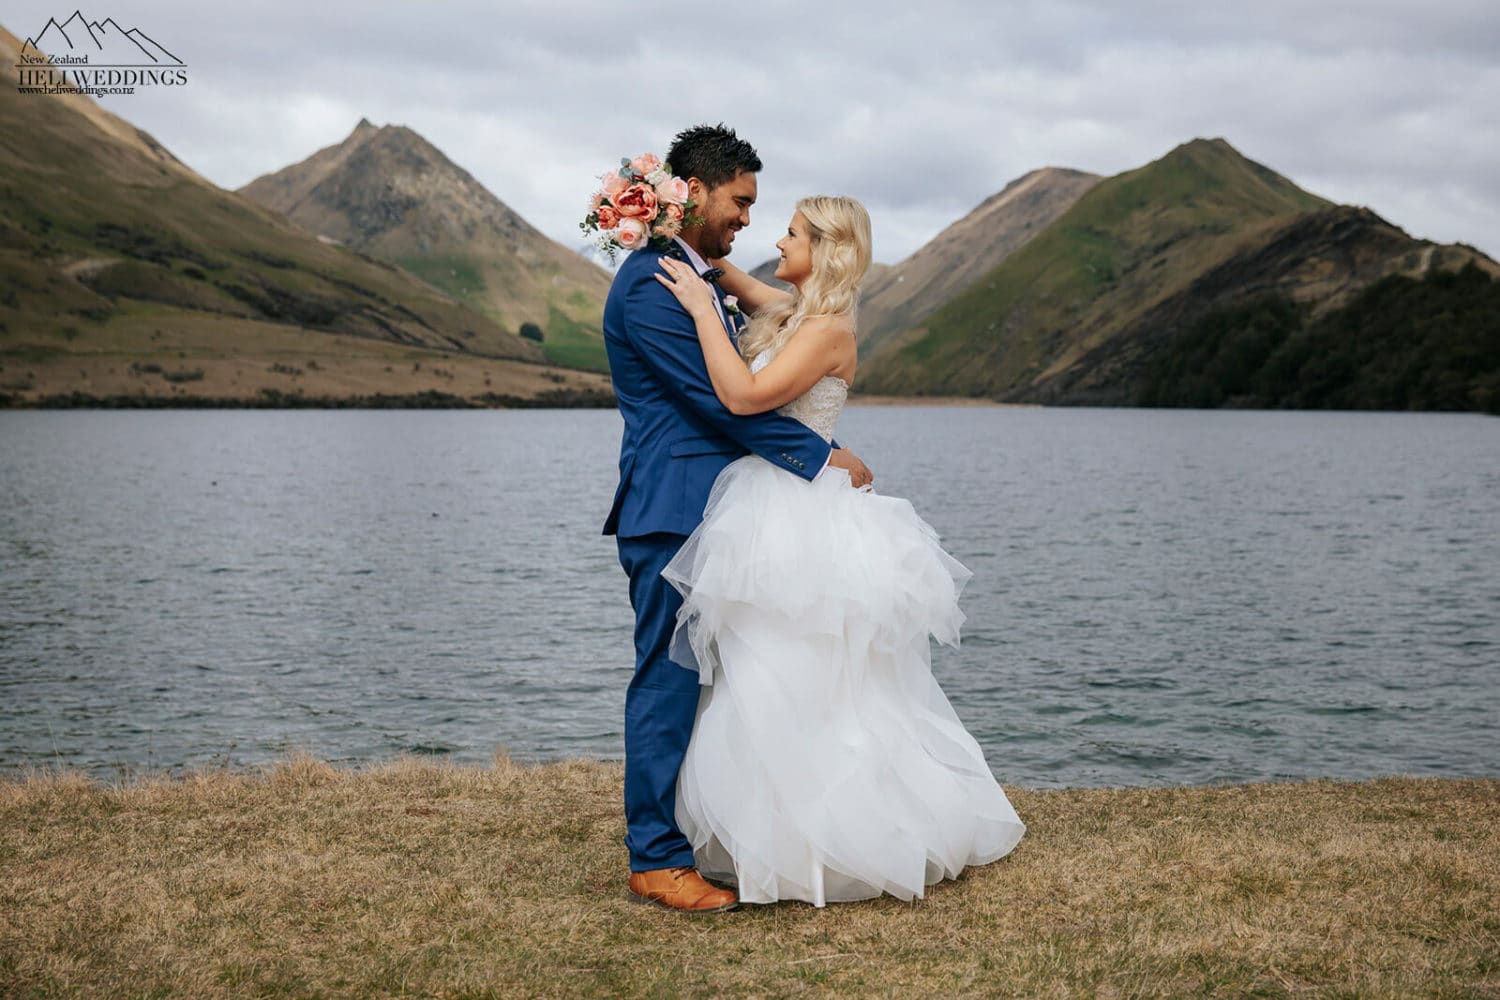 Wedding ceremony and wedding photography at MMoke Lake Queenstown